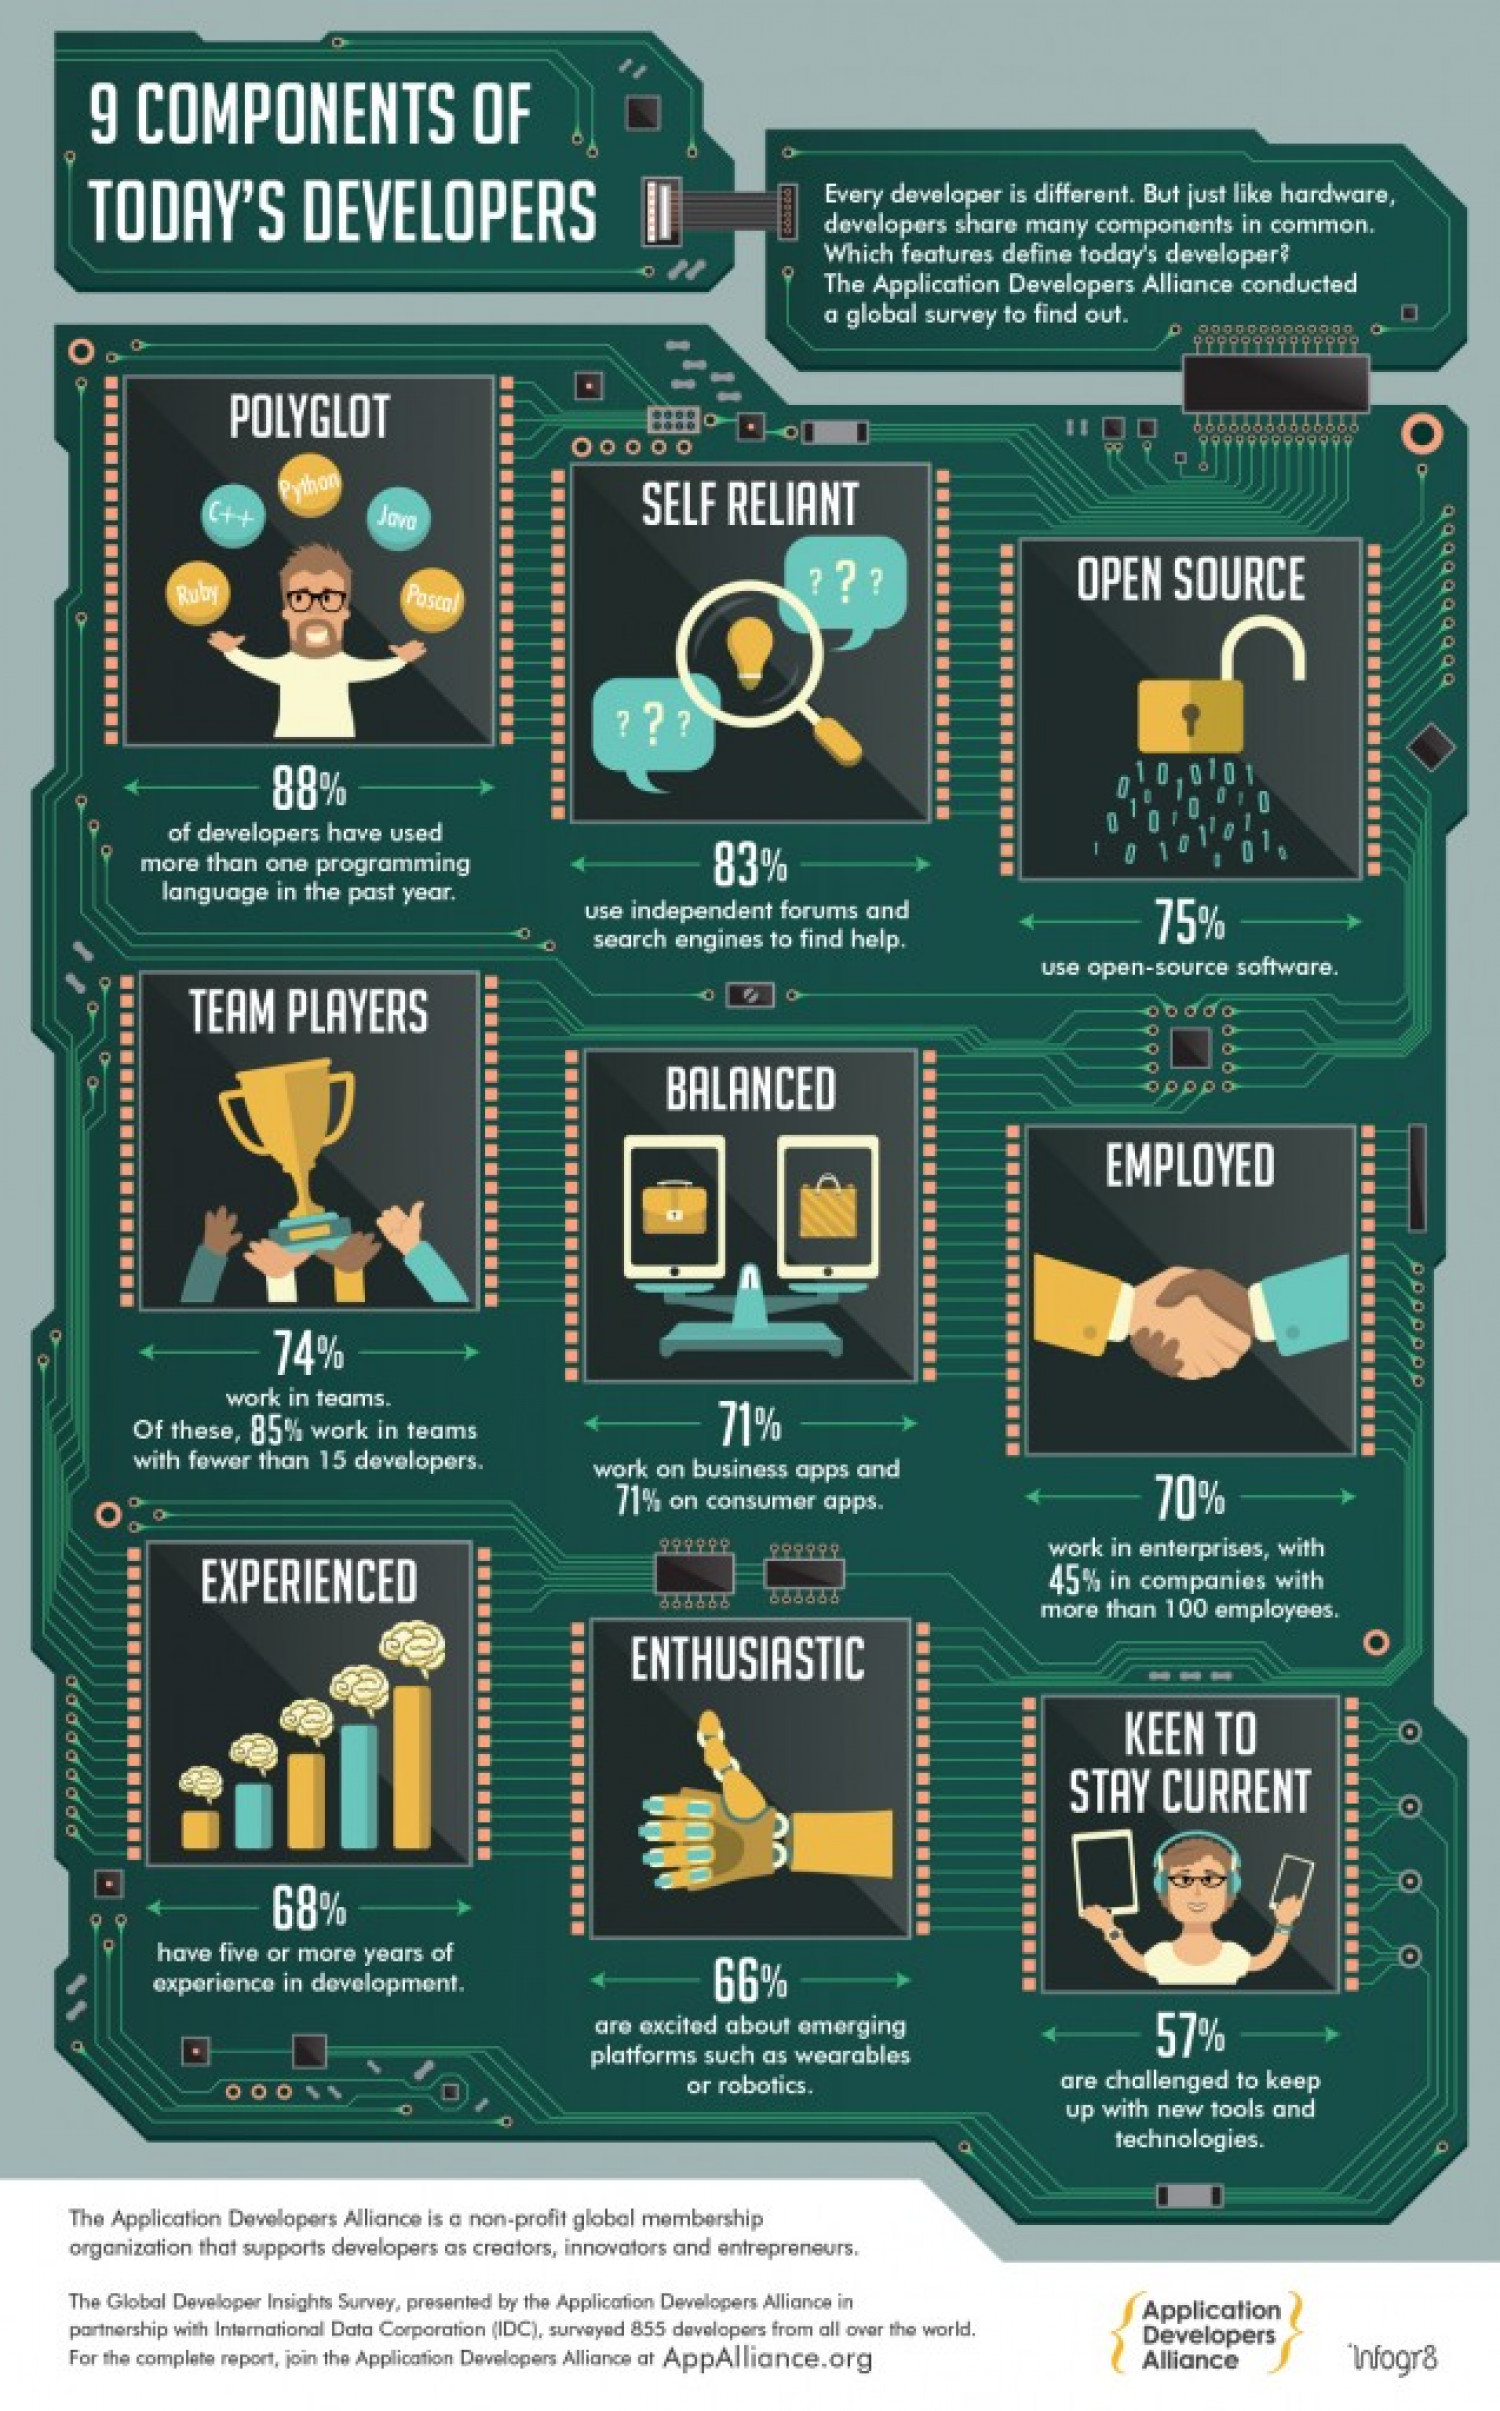 Application Developers Alliance: 9 Components of Today's Developers Infographic